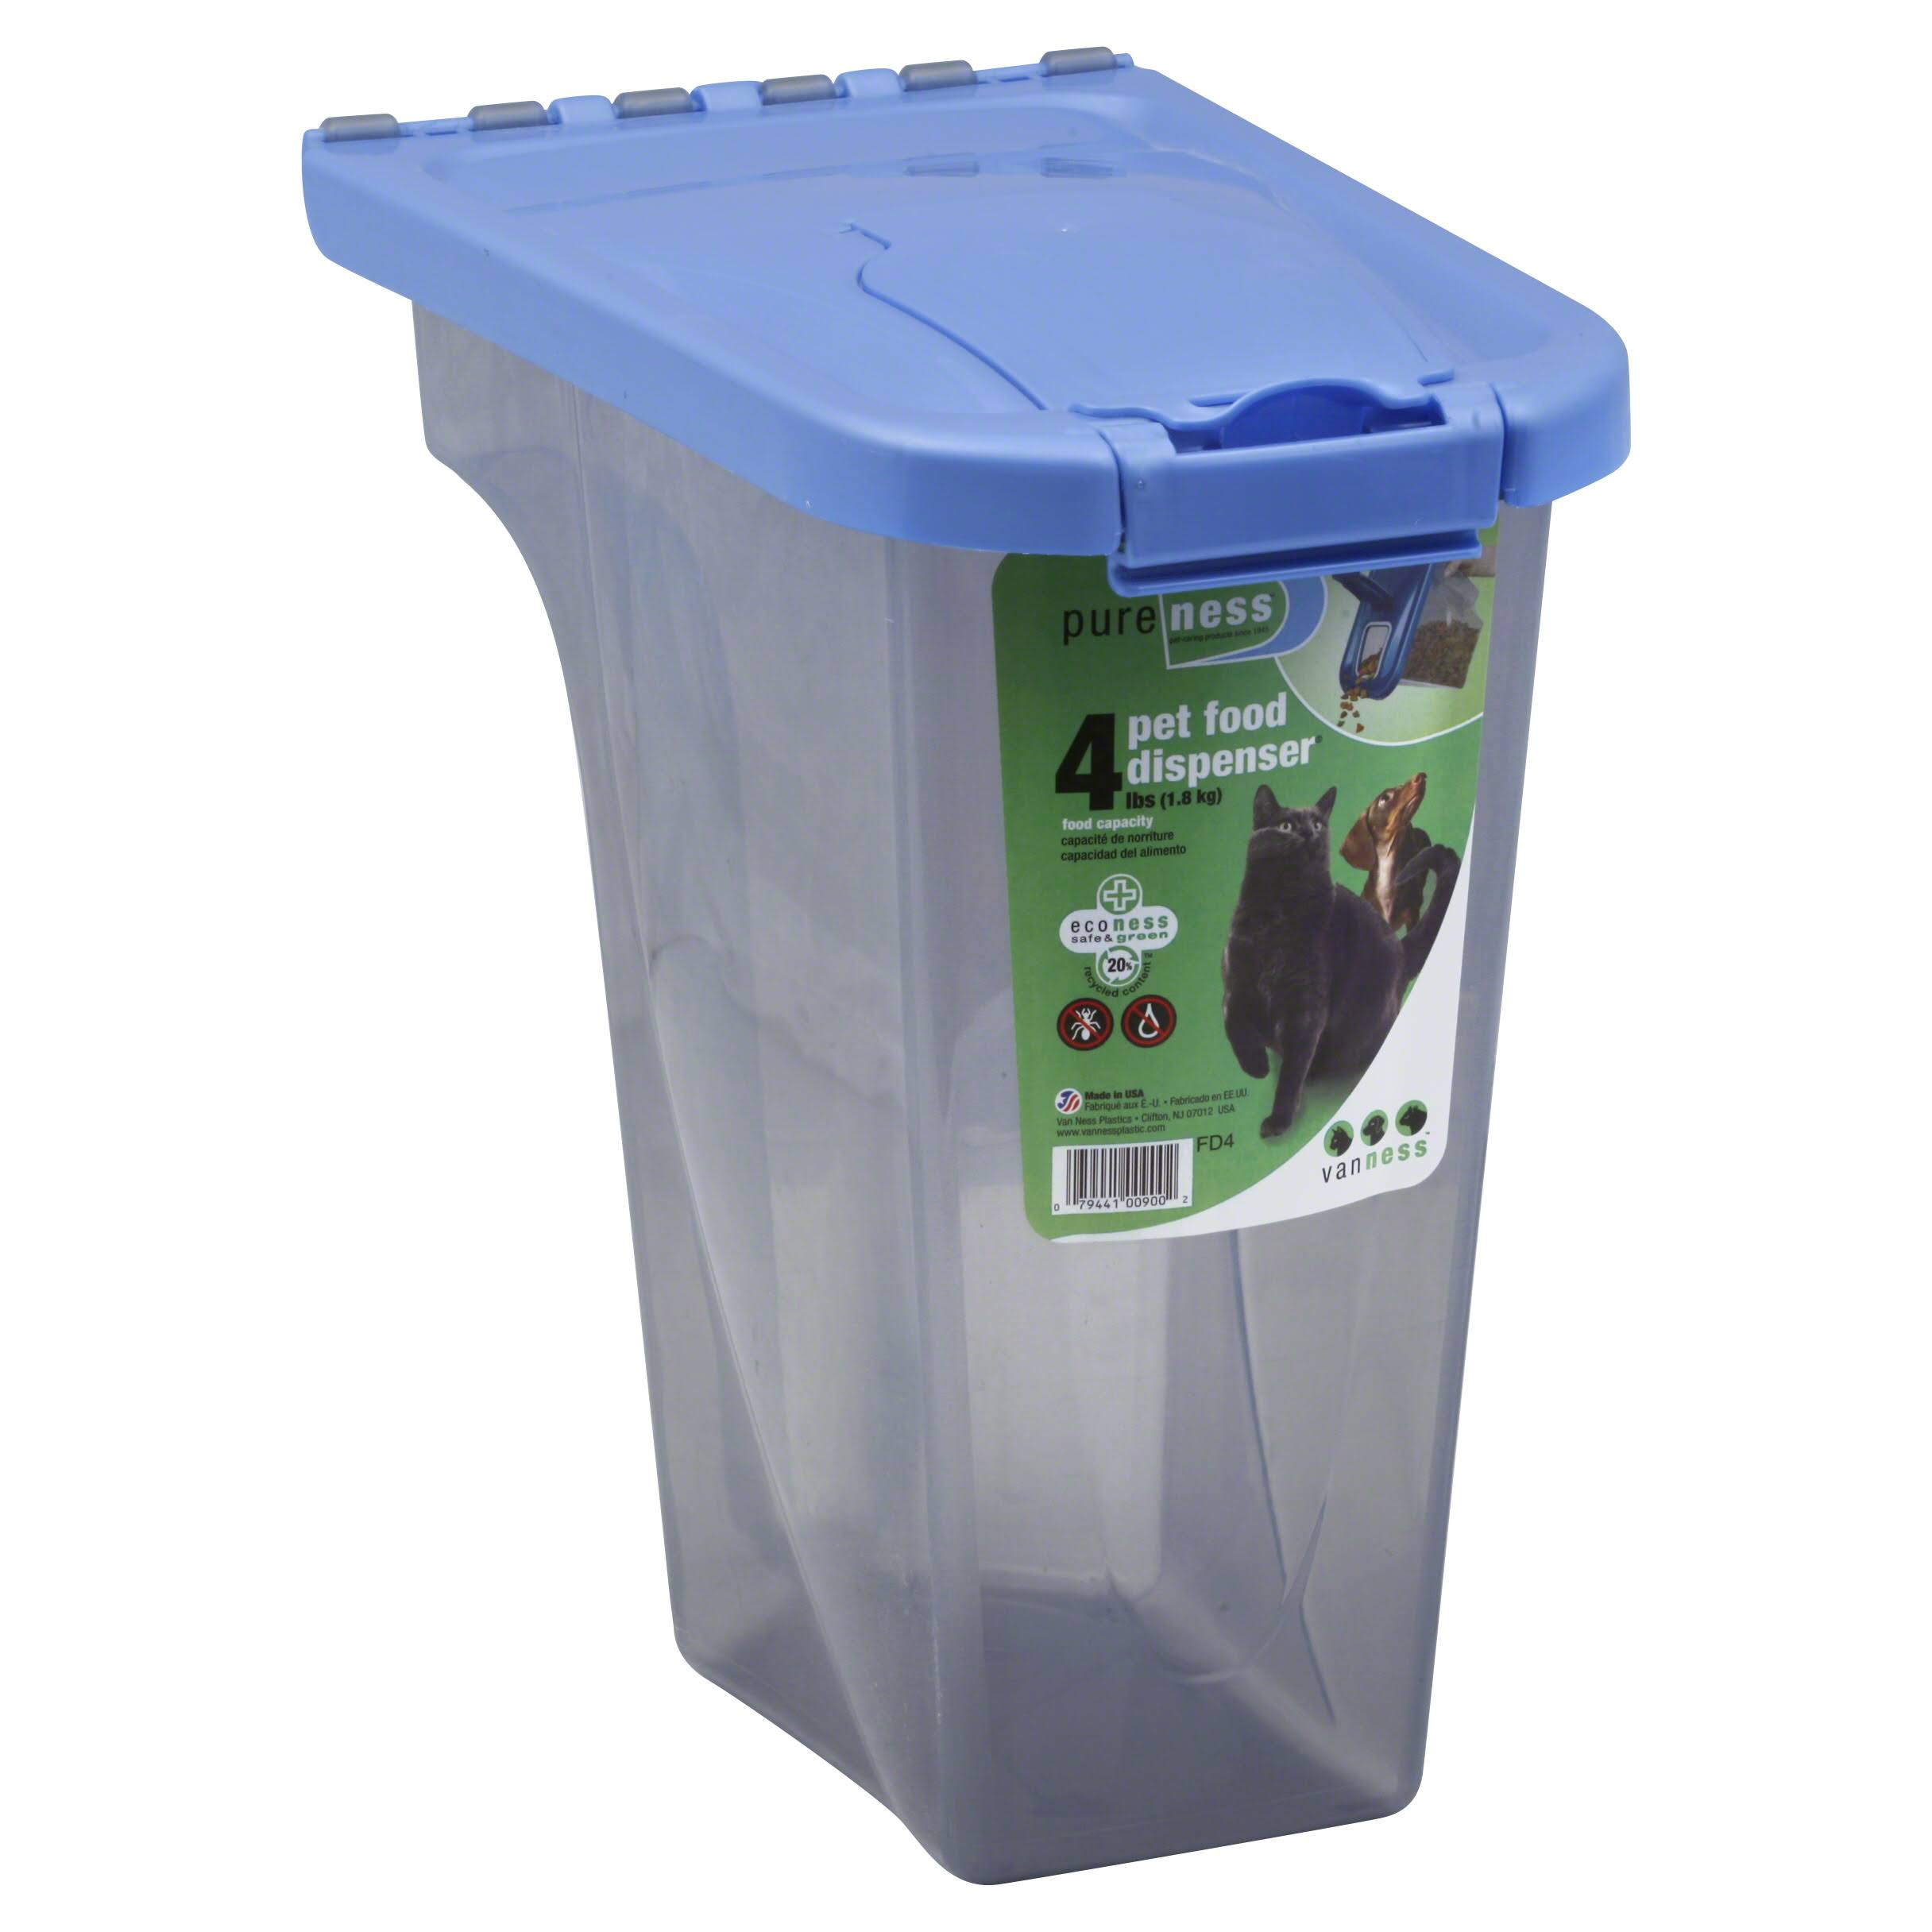 Van Ness Pureness Dispenser, Pet Food